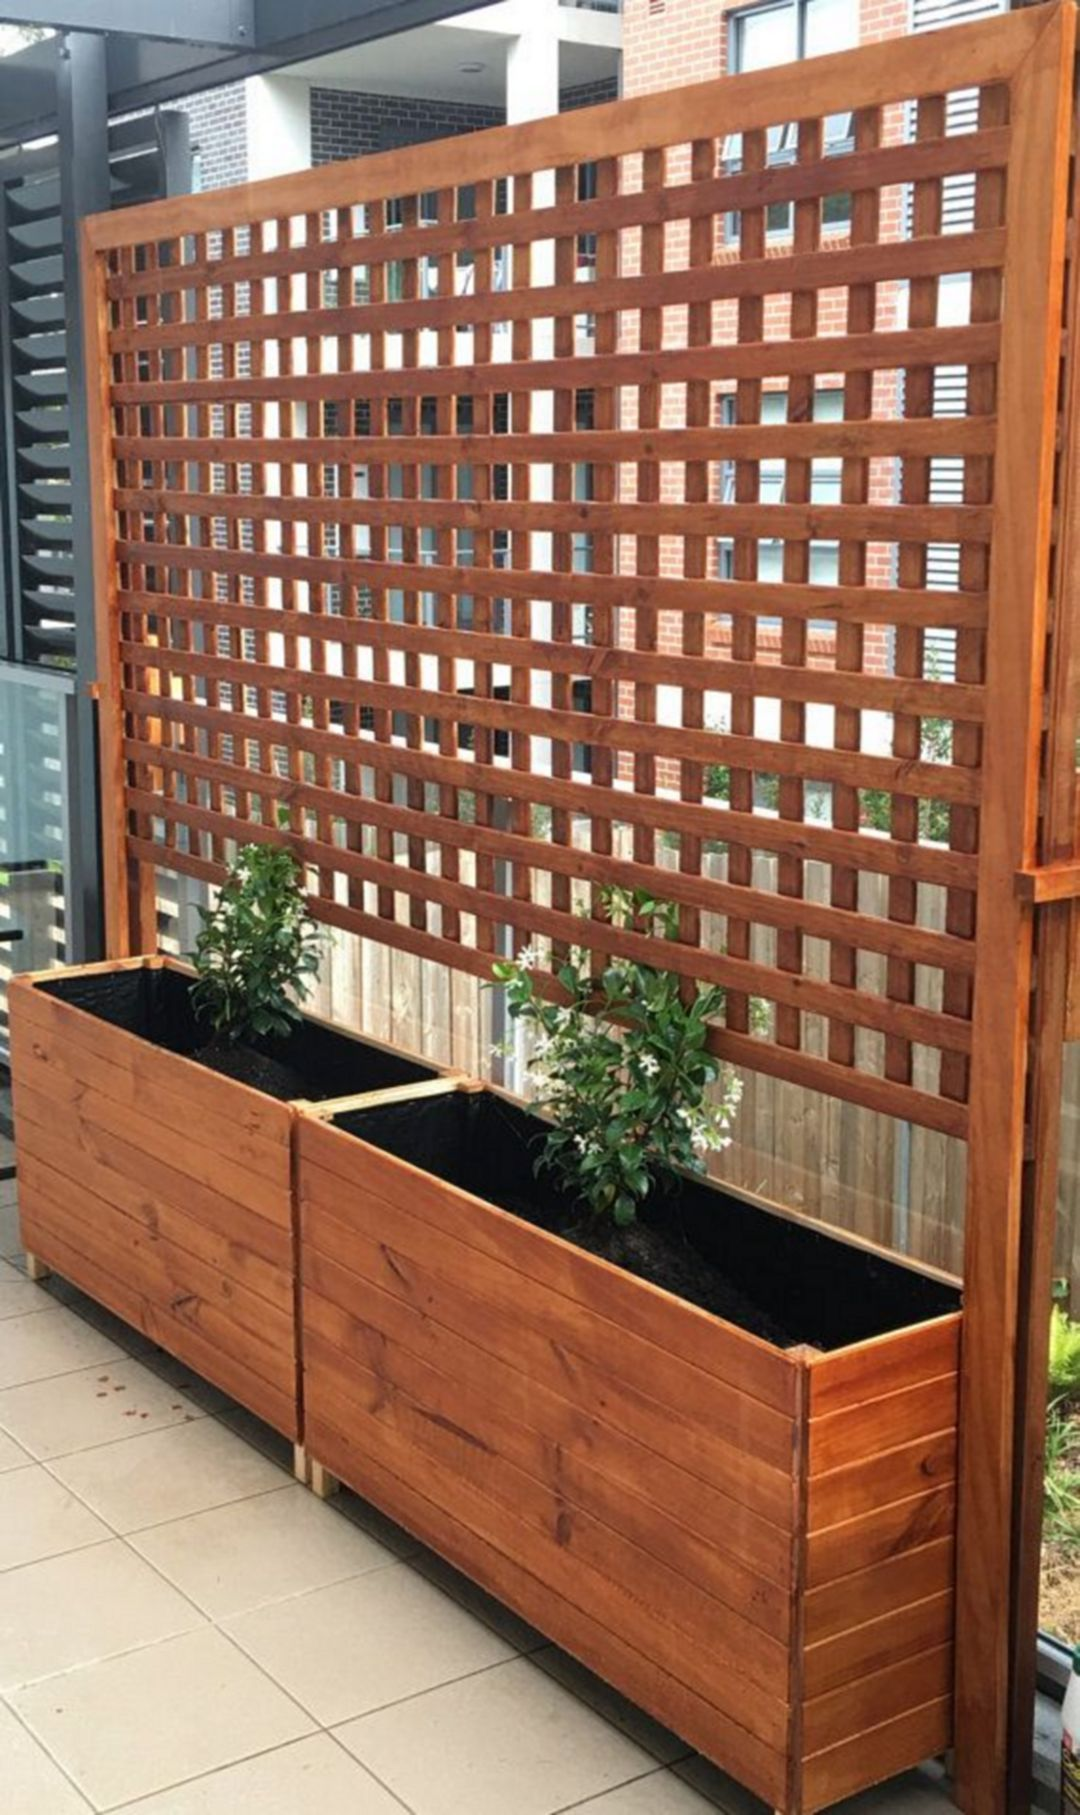 Backyard Privacy Fence Landscaping Ideas On A Budget 151 Privacylandscape Landscapeonabudg Privacy Fence Landscaping Privacy Landscaping Garden Planter Boxes